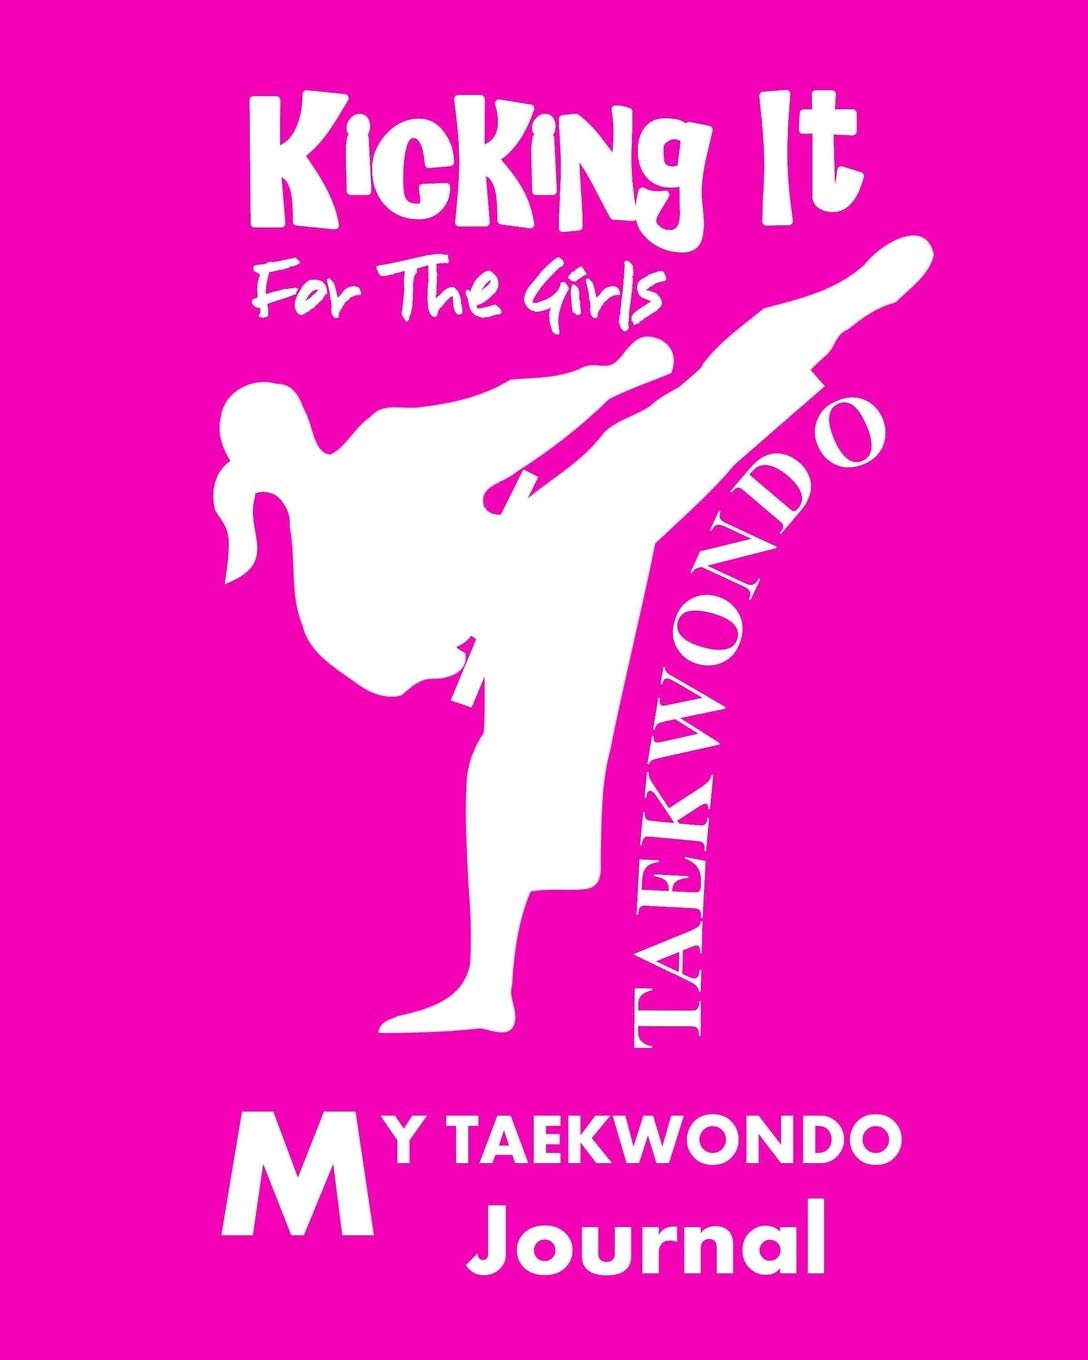 Kicking It For The Girls Taekwondo Fun Martial Arts Journal Note Book 8 X 10 Book Cover Containing 150 Pages Of Blank Dot Grid Journal Paper Cool Gift For Girls Who